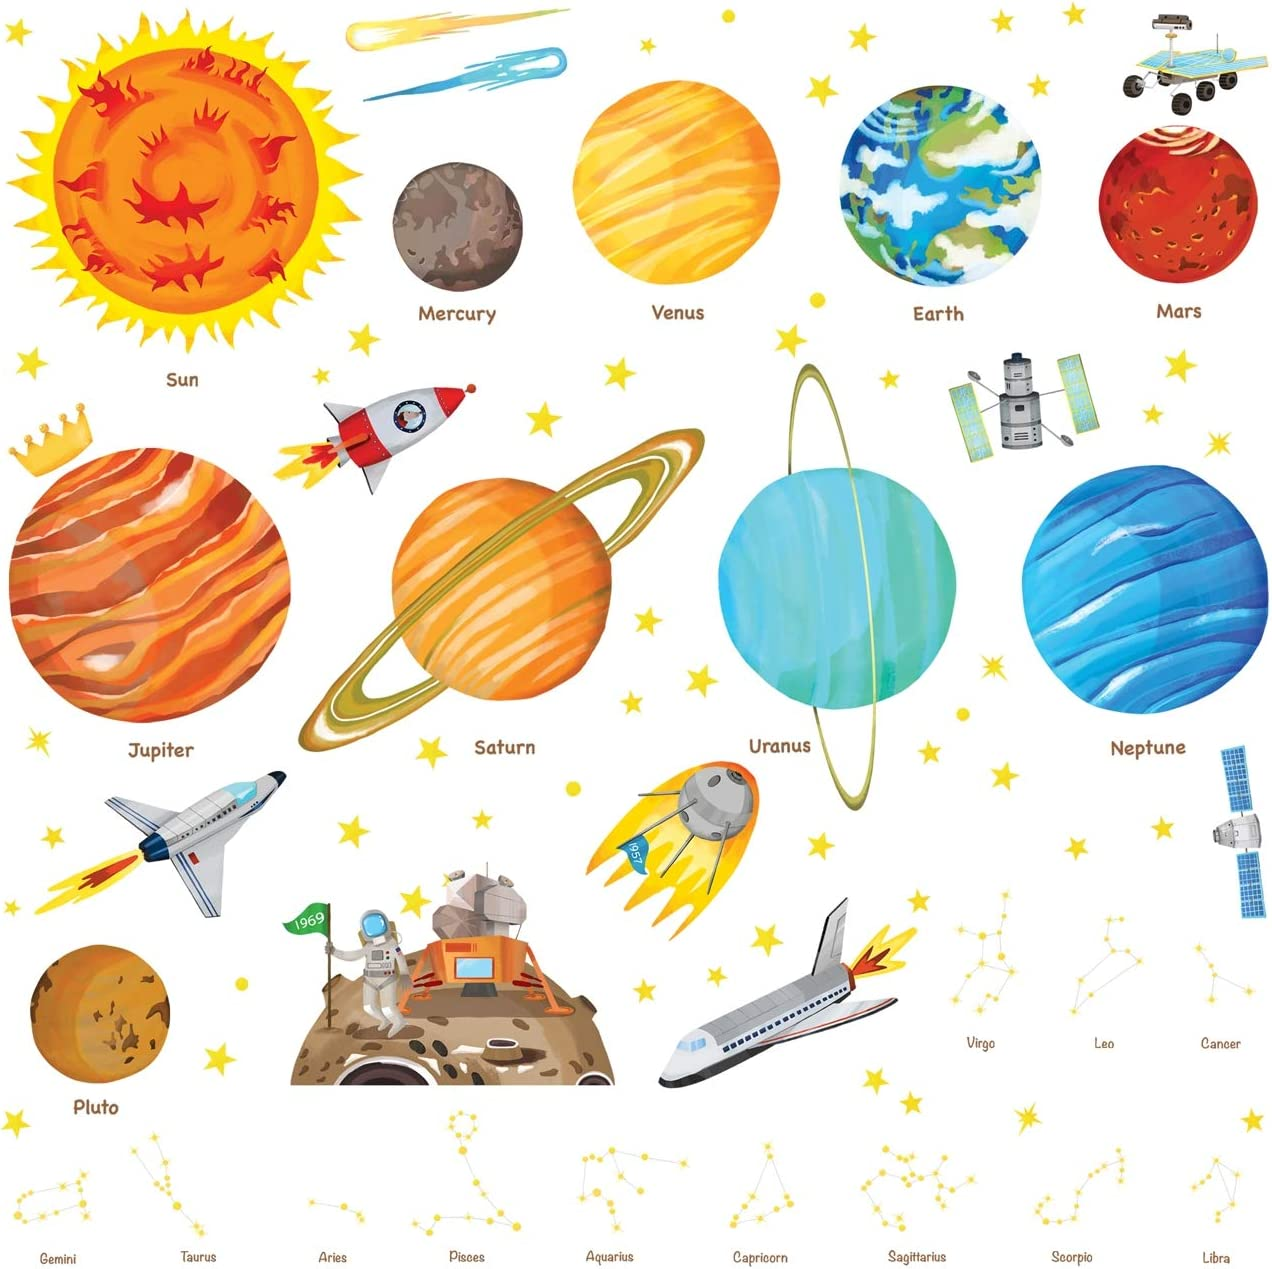 Decowall DS-8018 The Solar System Kids Wall Stickers Wall Decals Peel and Stick Removable Wall Stickers for Kids Nursery Bedroom Living Room Small